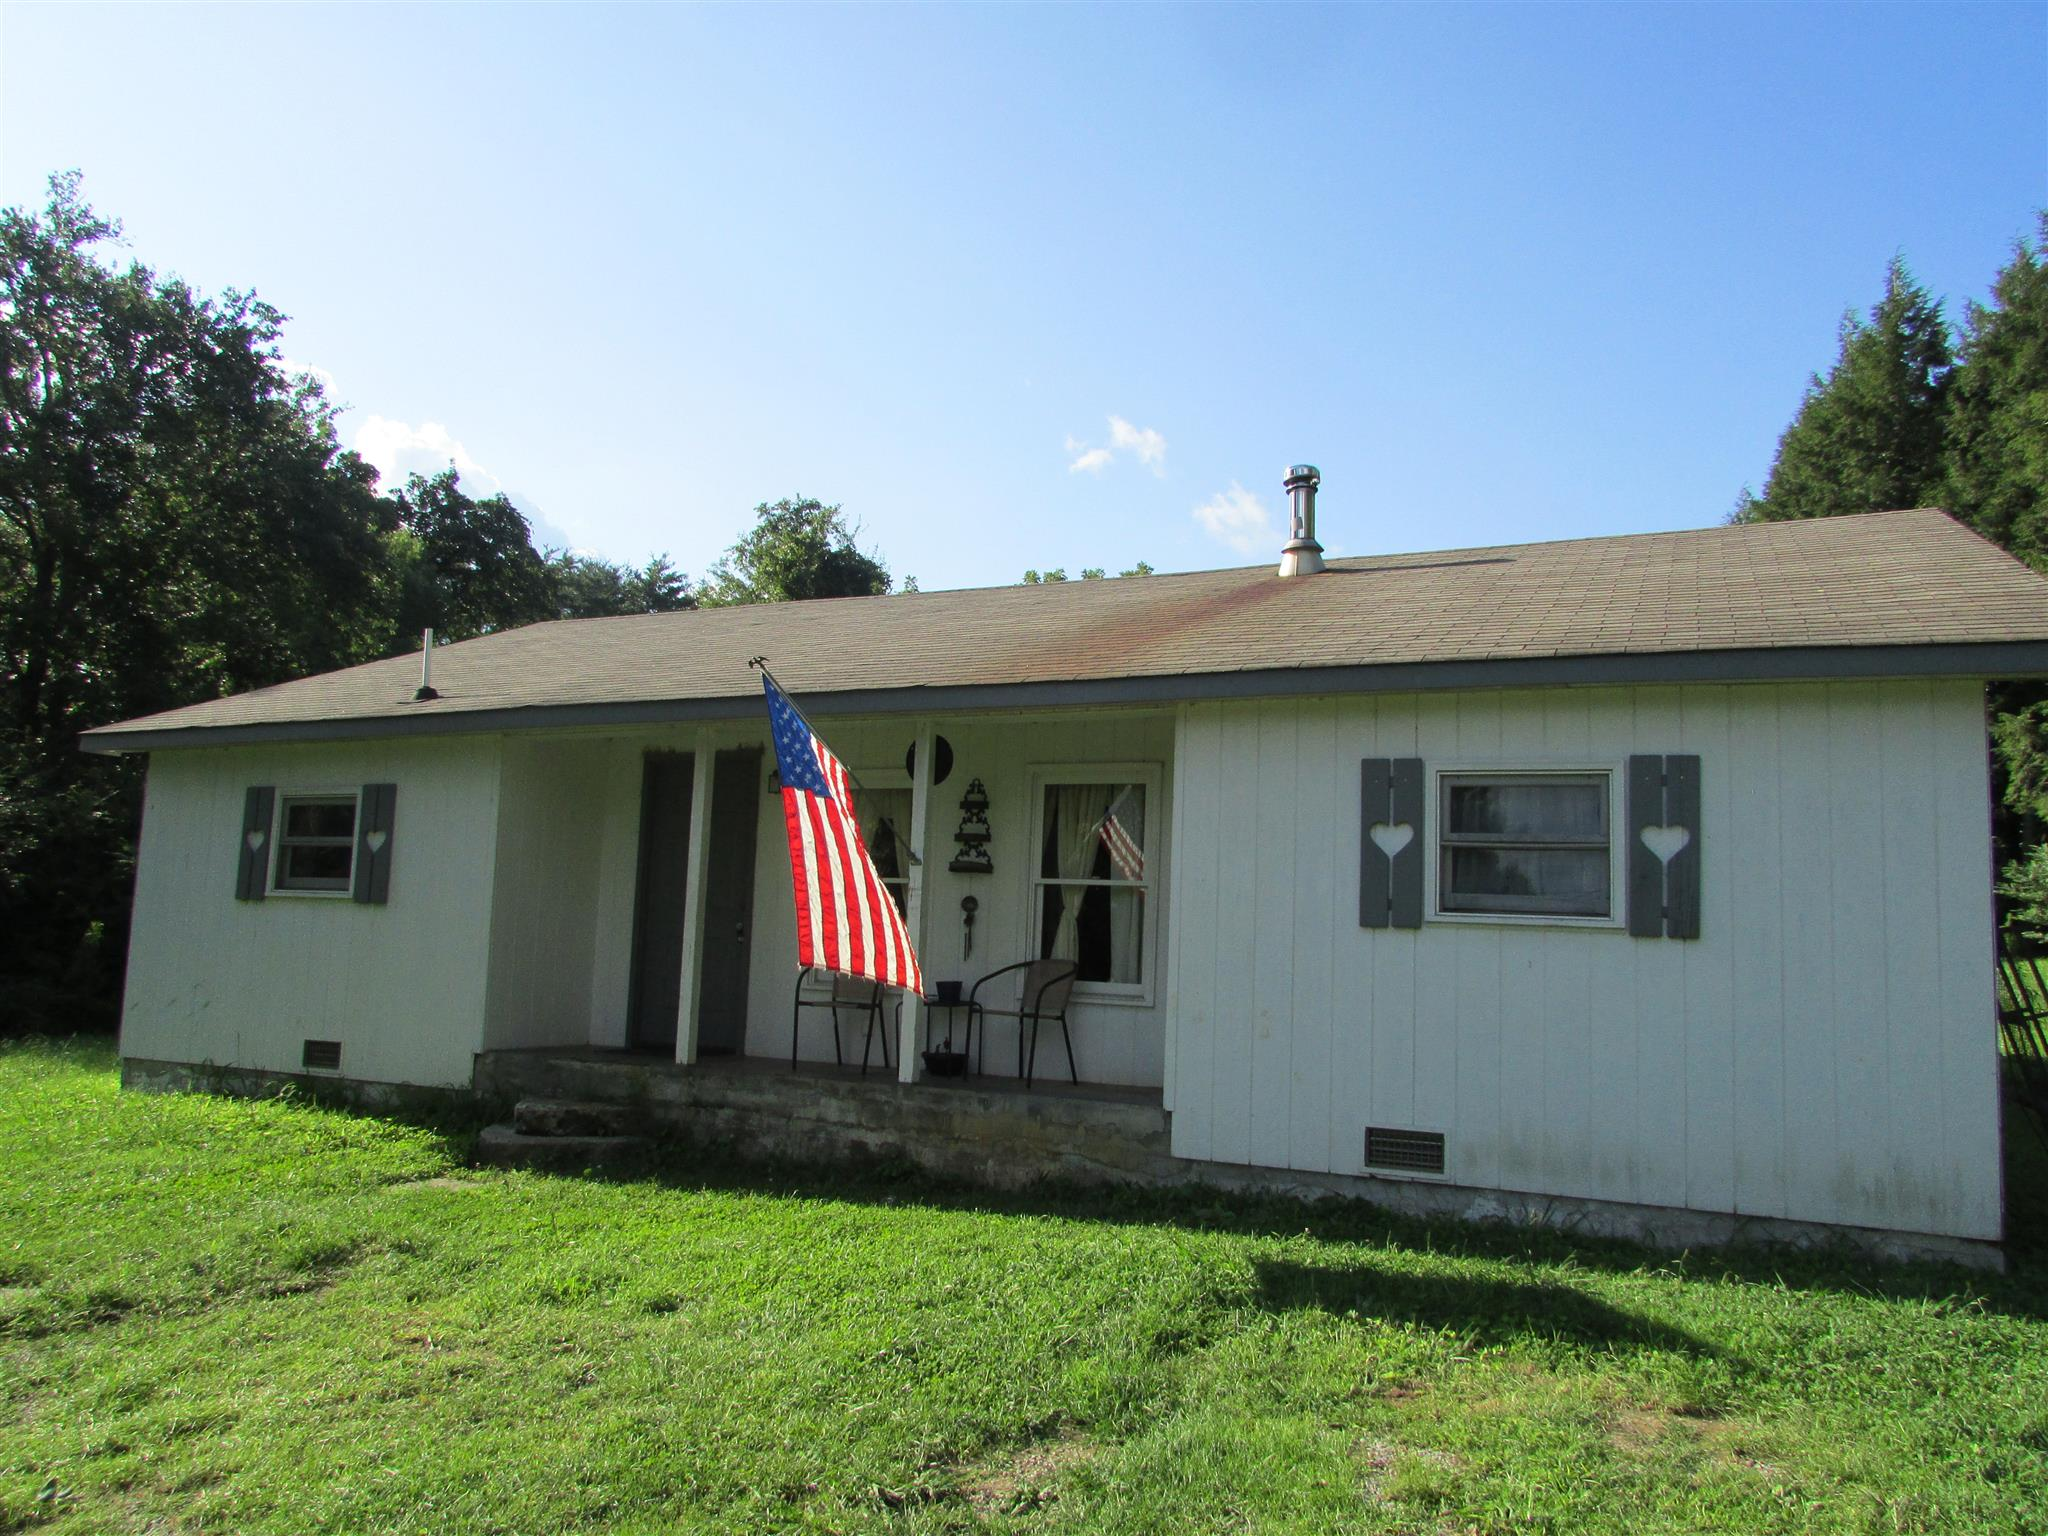 10009 Sr 108, Altamont, TN 37301 - Altamont, TN real estate listing